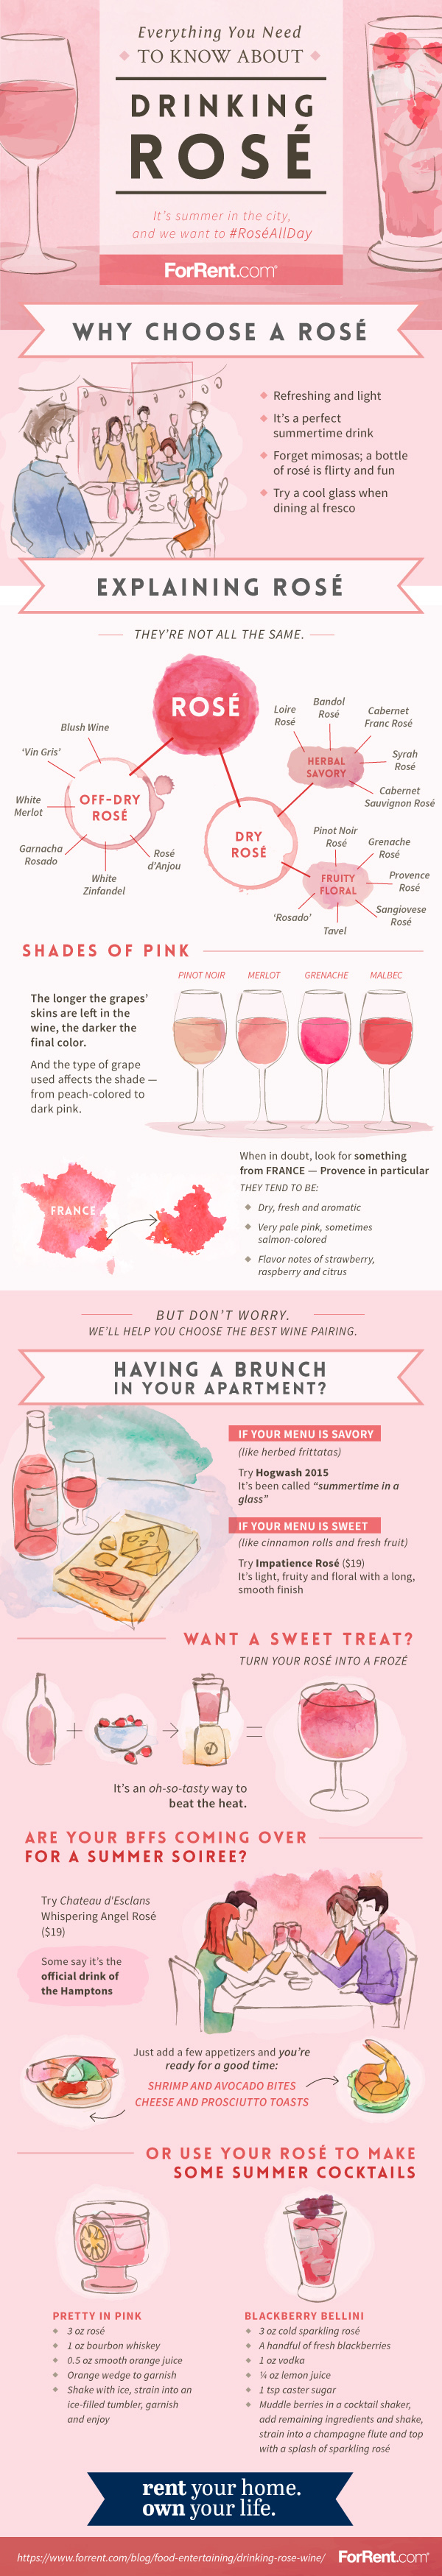 Everything You Need to Know About Drinking Rose